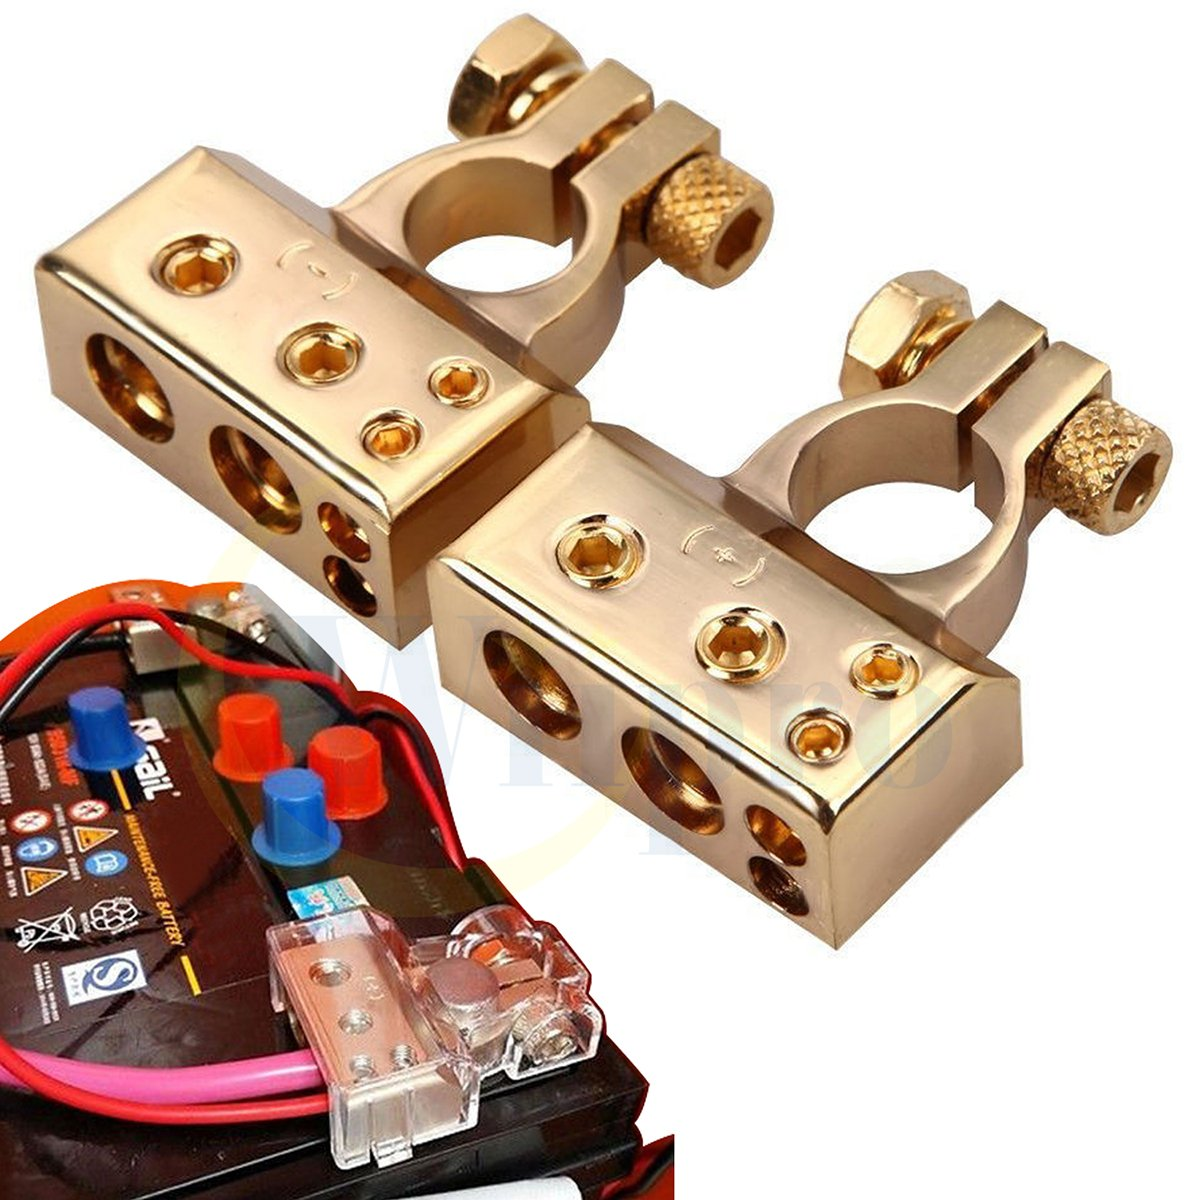 Wiipro 2PCS Positive Negative Battery Terminal for Auto Car 2/4/8 Gauge AWG Heavy Duty Metal Gold Plated